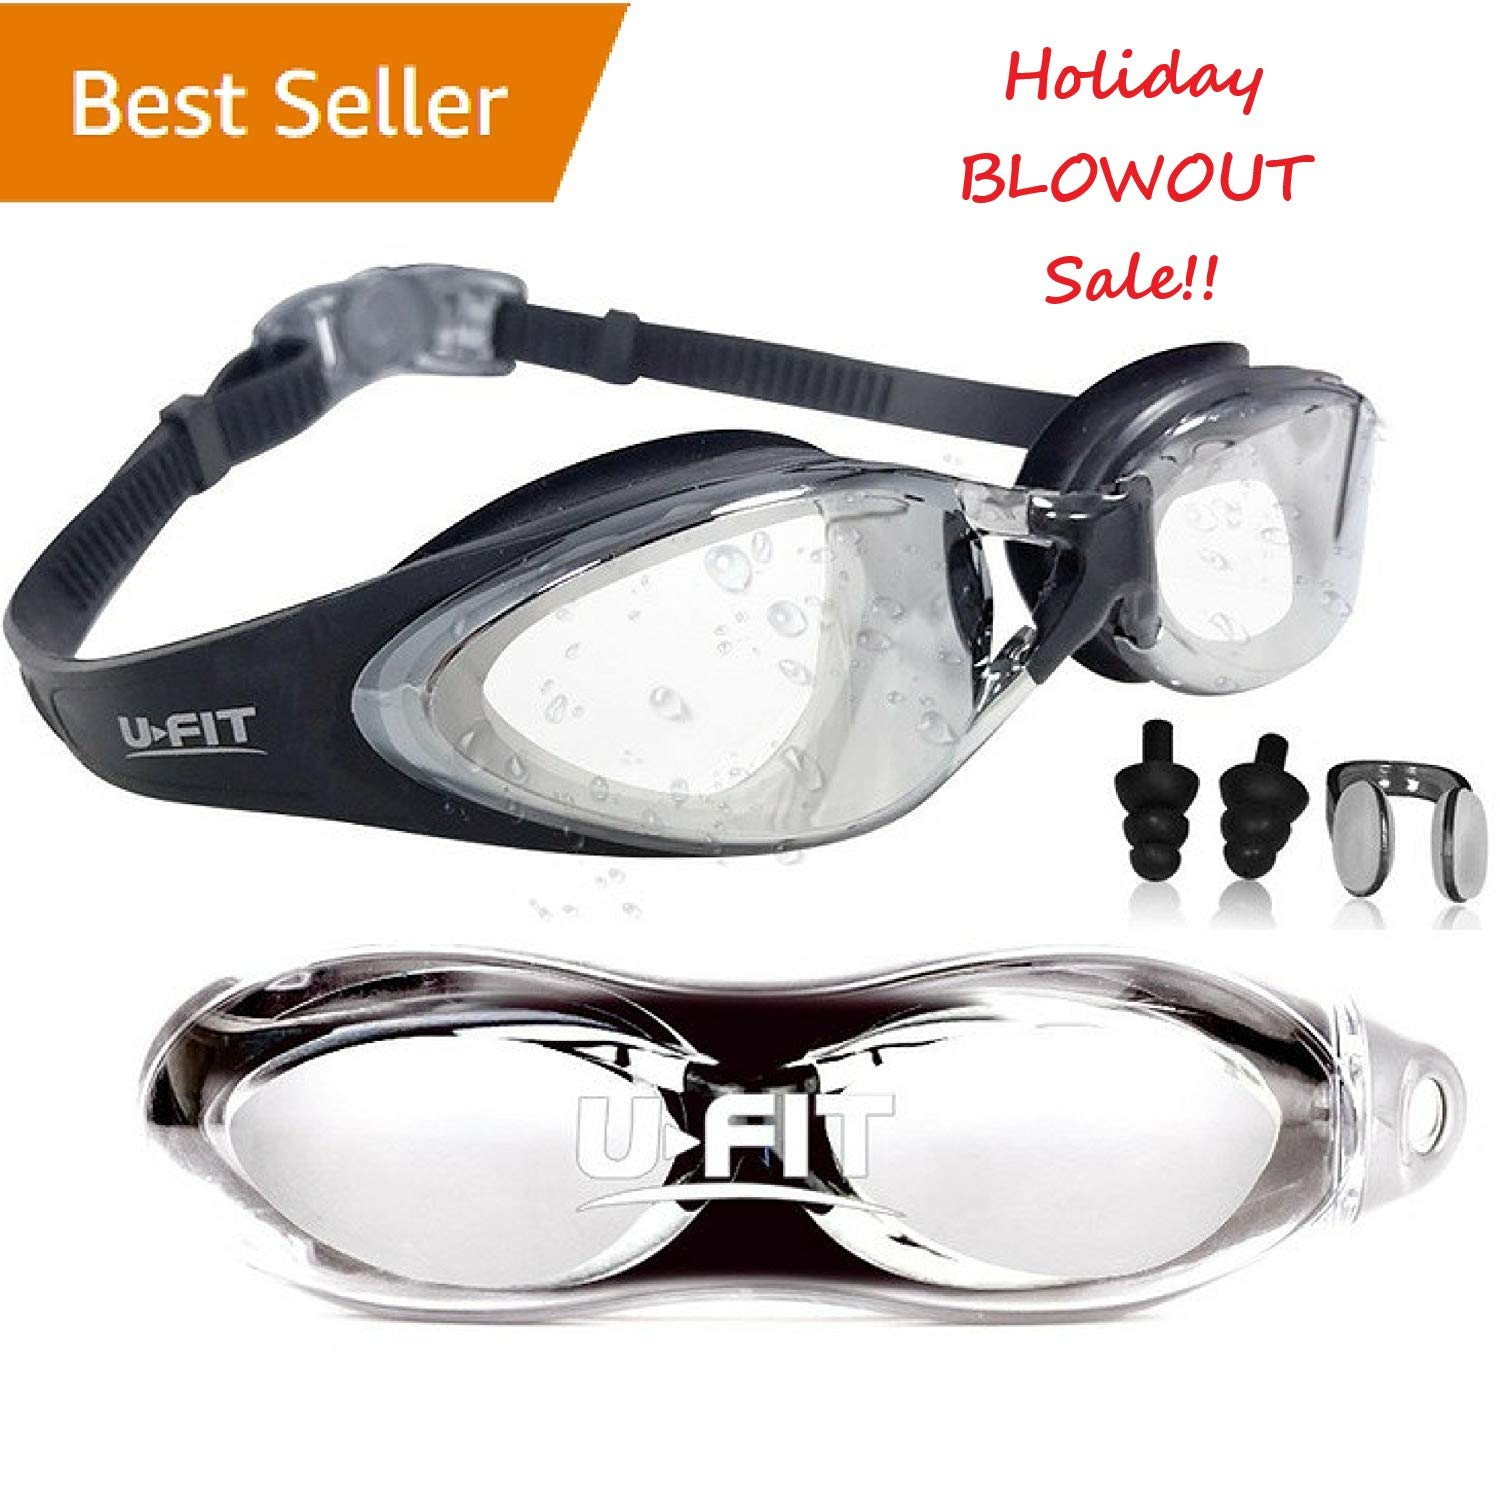 4943ca2b89 U-FIT Swimming Goggles - Swim Goggles For Men